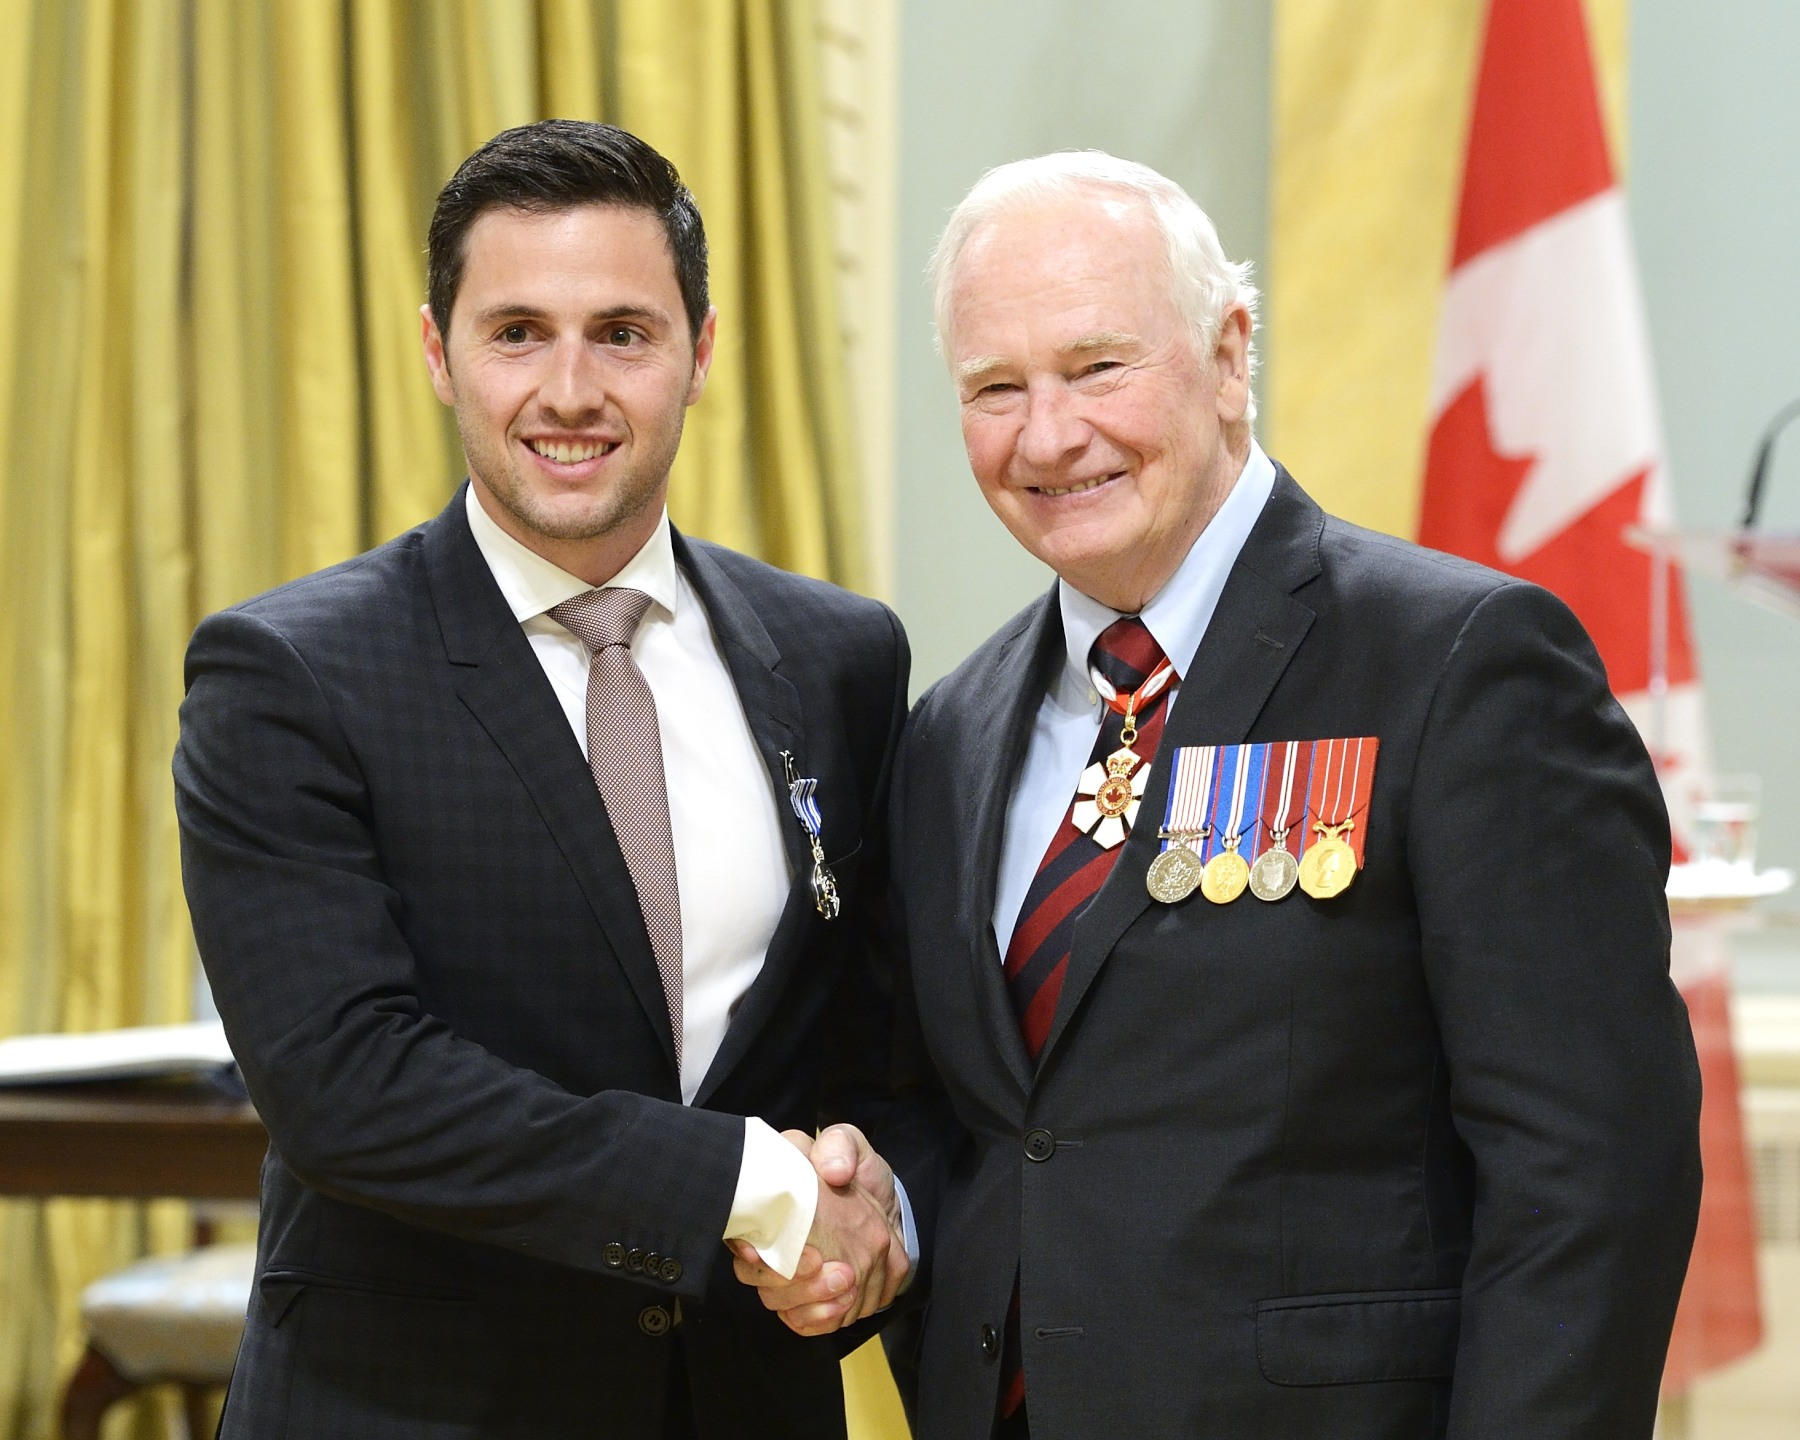 Alexandre Bilodeau, M.S.M. (Montréal, Quebec), is an accomplished freestyle skier with 19 World Cup medals and the first Olympic gold medal won by a Canadian on Canadian soil. He is also a national spokesperson for youth with disabilities who contributes time and money to the Canadian Association of Paediatric Health Centres. In 2012, he and his brother served as Canada's ambassadors for World Cerebral Palsy Day.